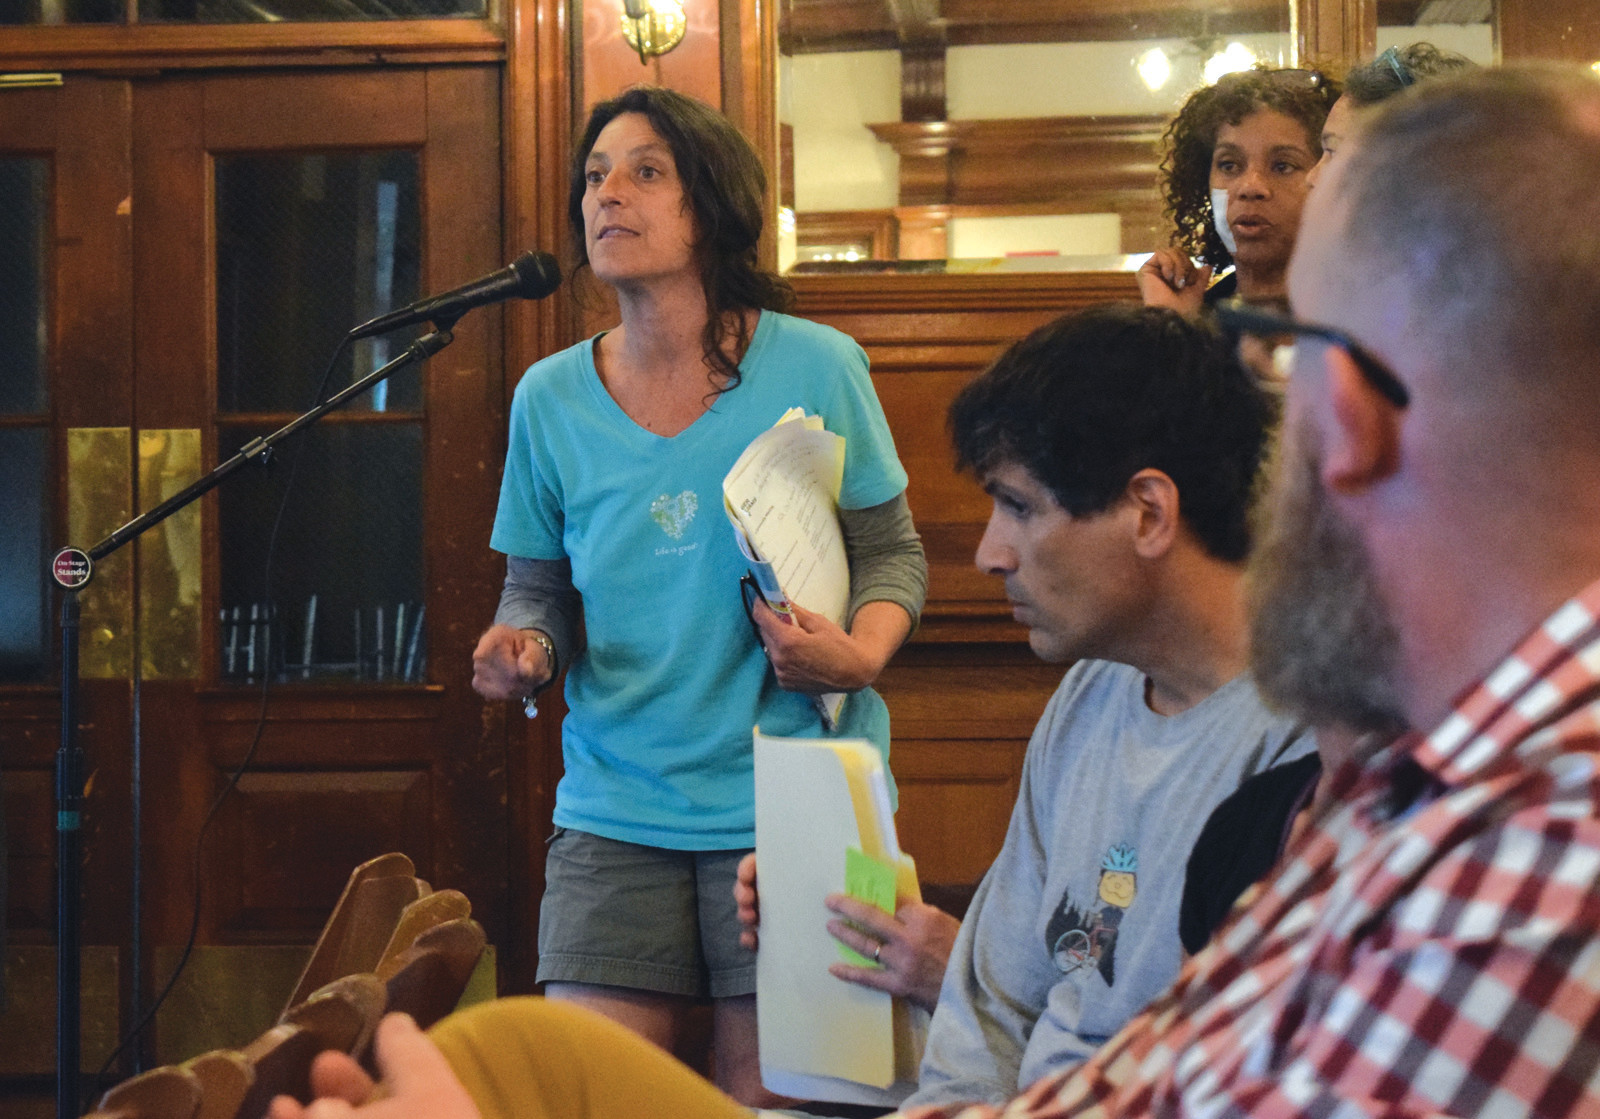 LOOKING FOR ANOTHER WAY: Lisa Gibb, who is staunchly opposed to the one-way, speaks at the Conservancy meeting on Thursday.